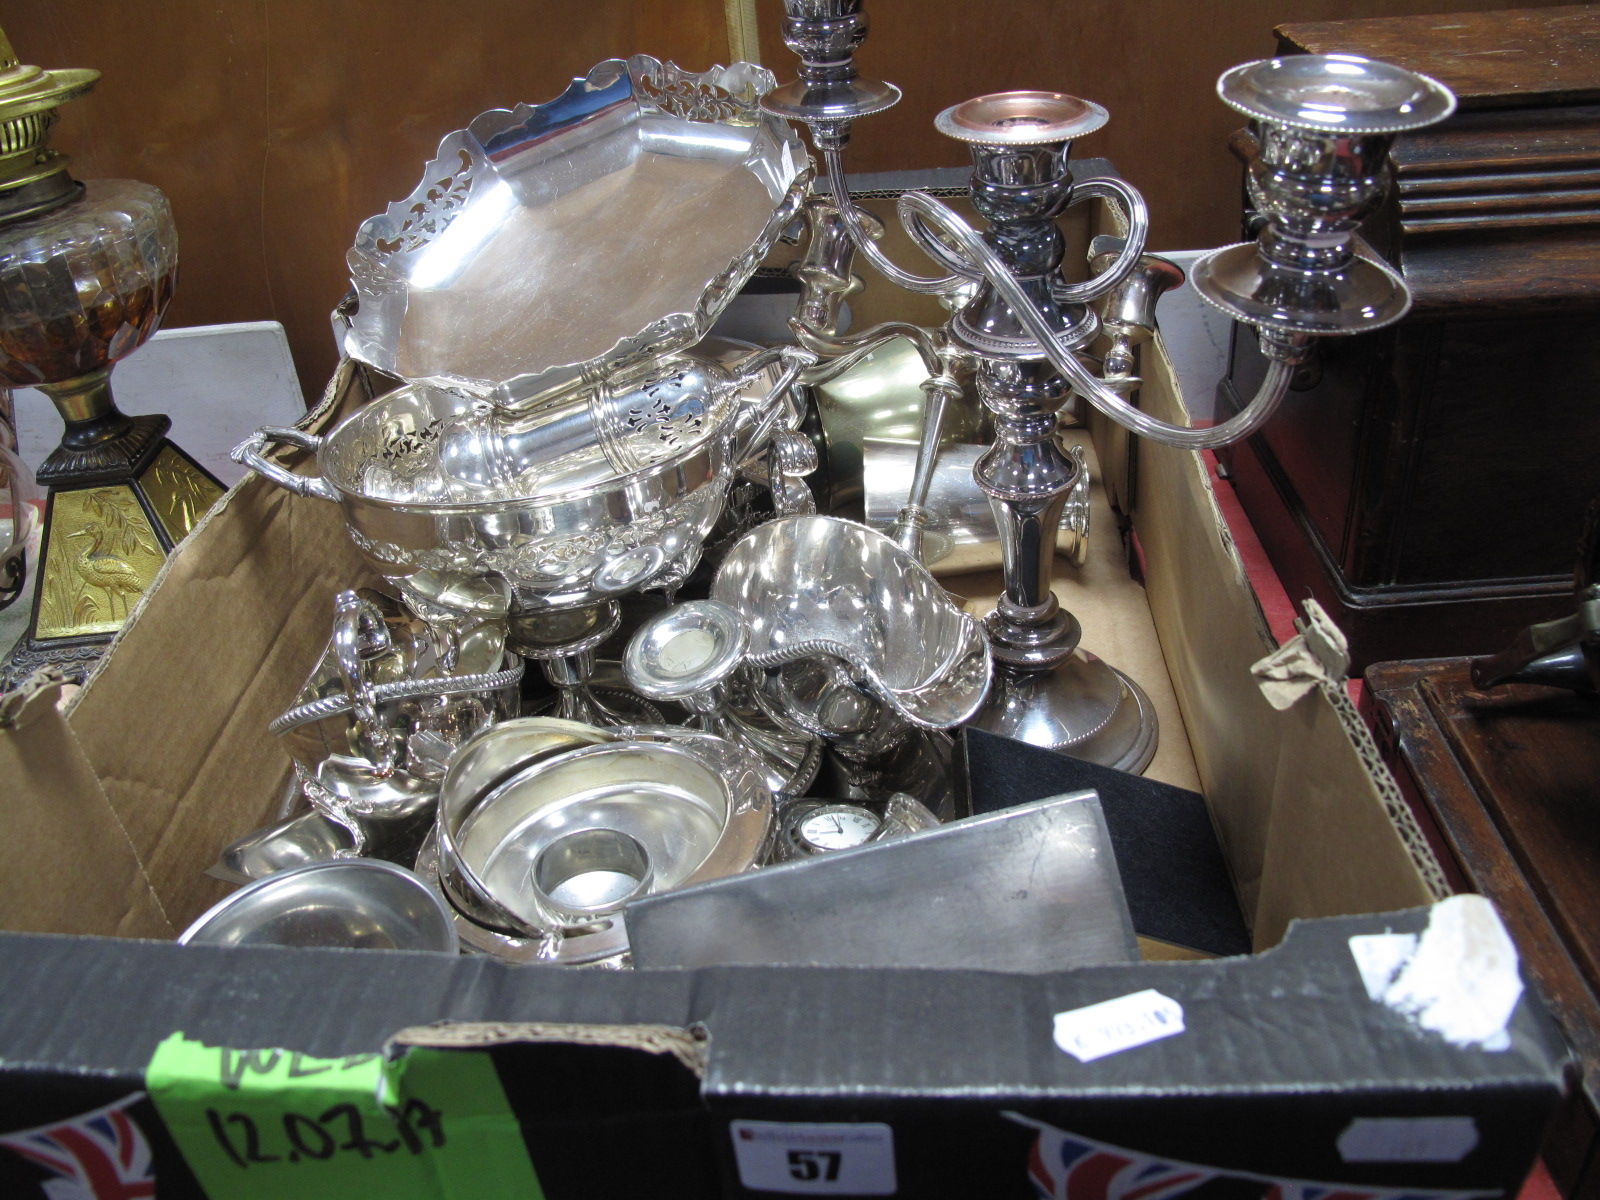 Lot 57 - A Mixed Lot of Assorted Plated Ware, including candelabrum, pedestal dish, sugar sifter, twin